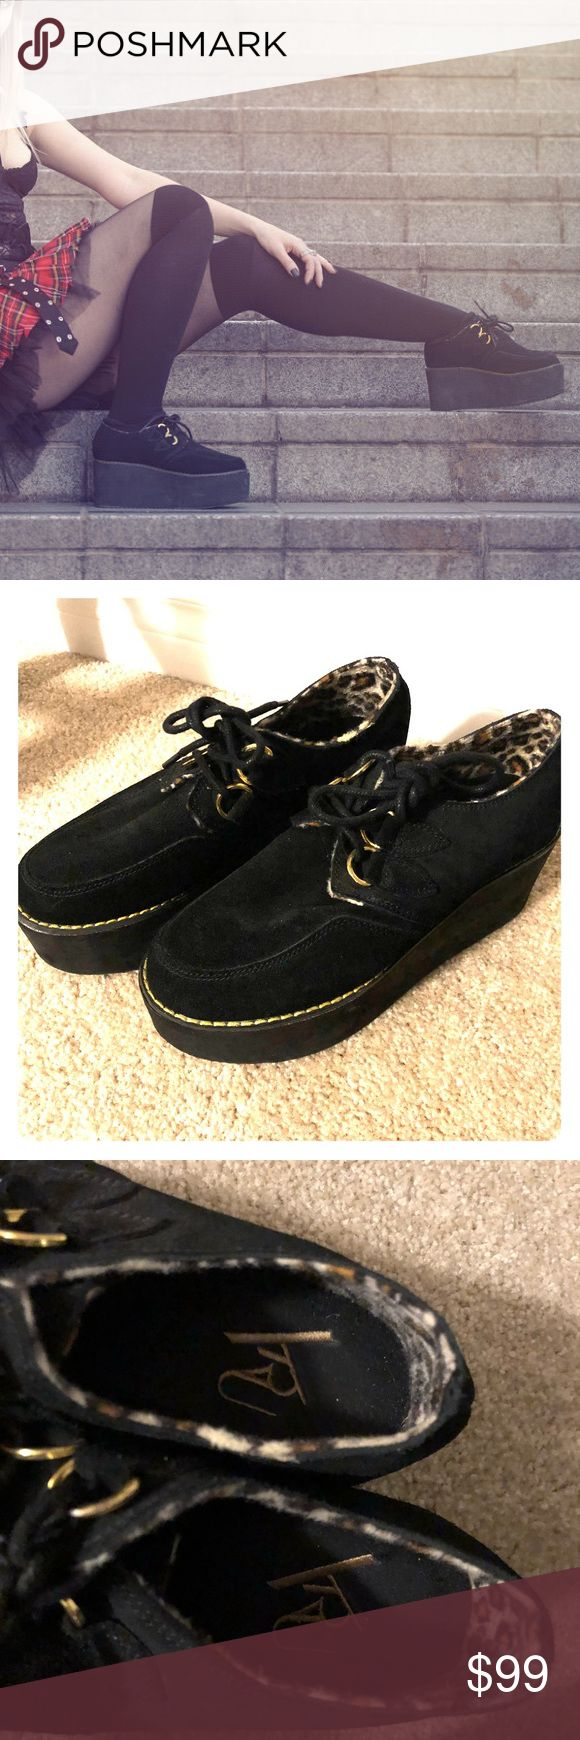 YRU platform creepers black leopard size 6 Almost new (worn once for a photo shoot) yru black and leopard (inside) platform creeper shoes. (All photos are of the actual shoes for sale including the cover photo) size 6  Please feel free to ask questions! YRU Shoes Platforms